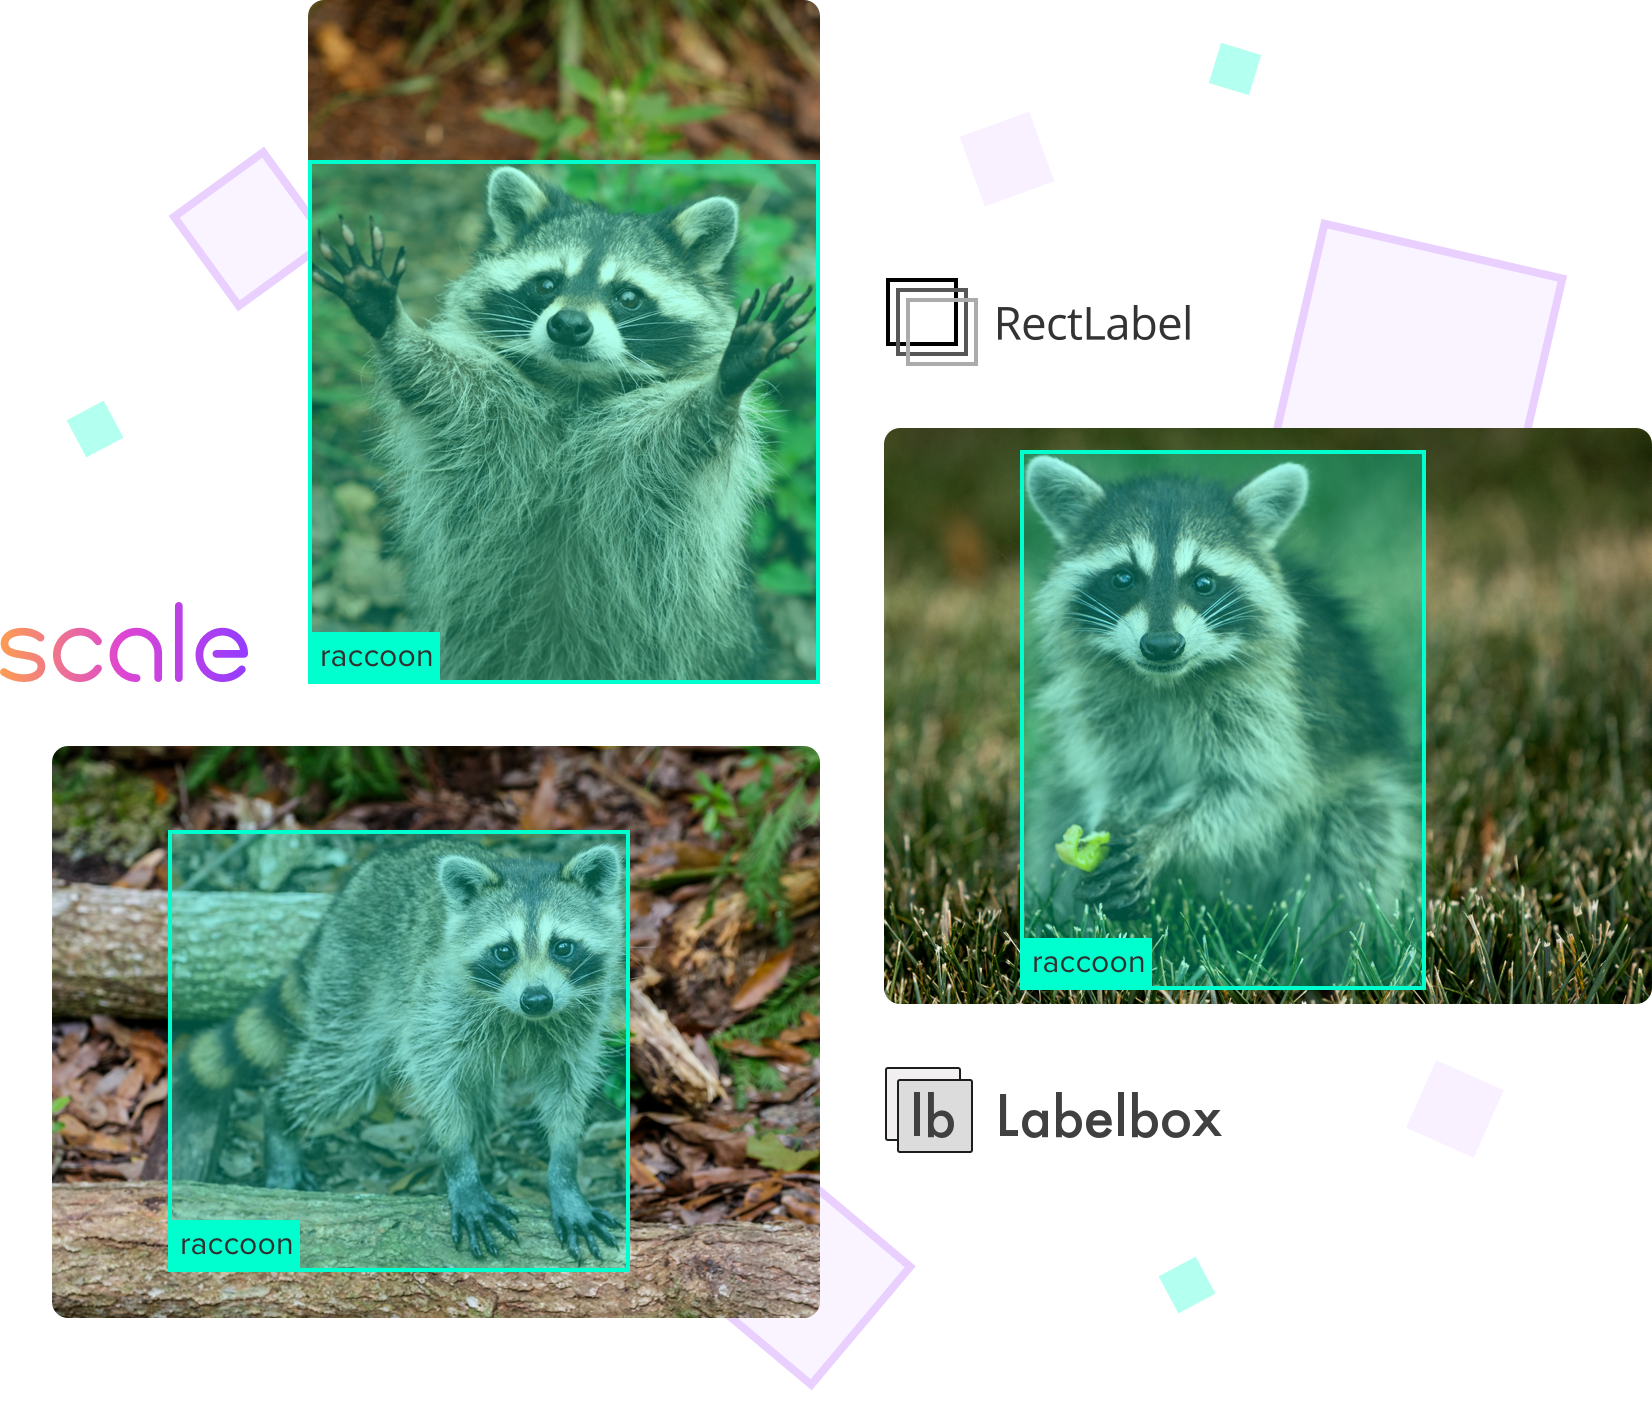 Labeling a Raccoon in various tools (Scale, LabelBox, RectLabel)